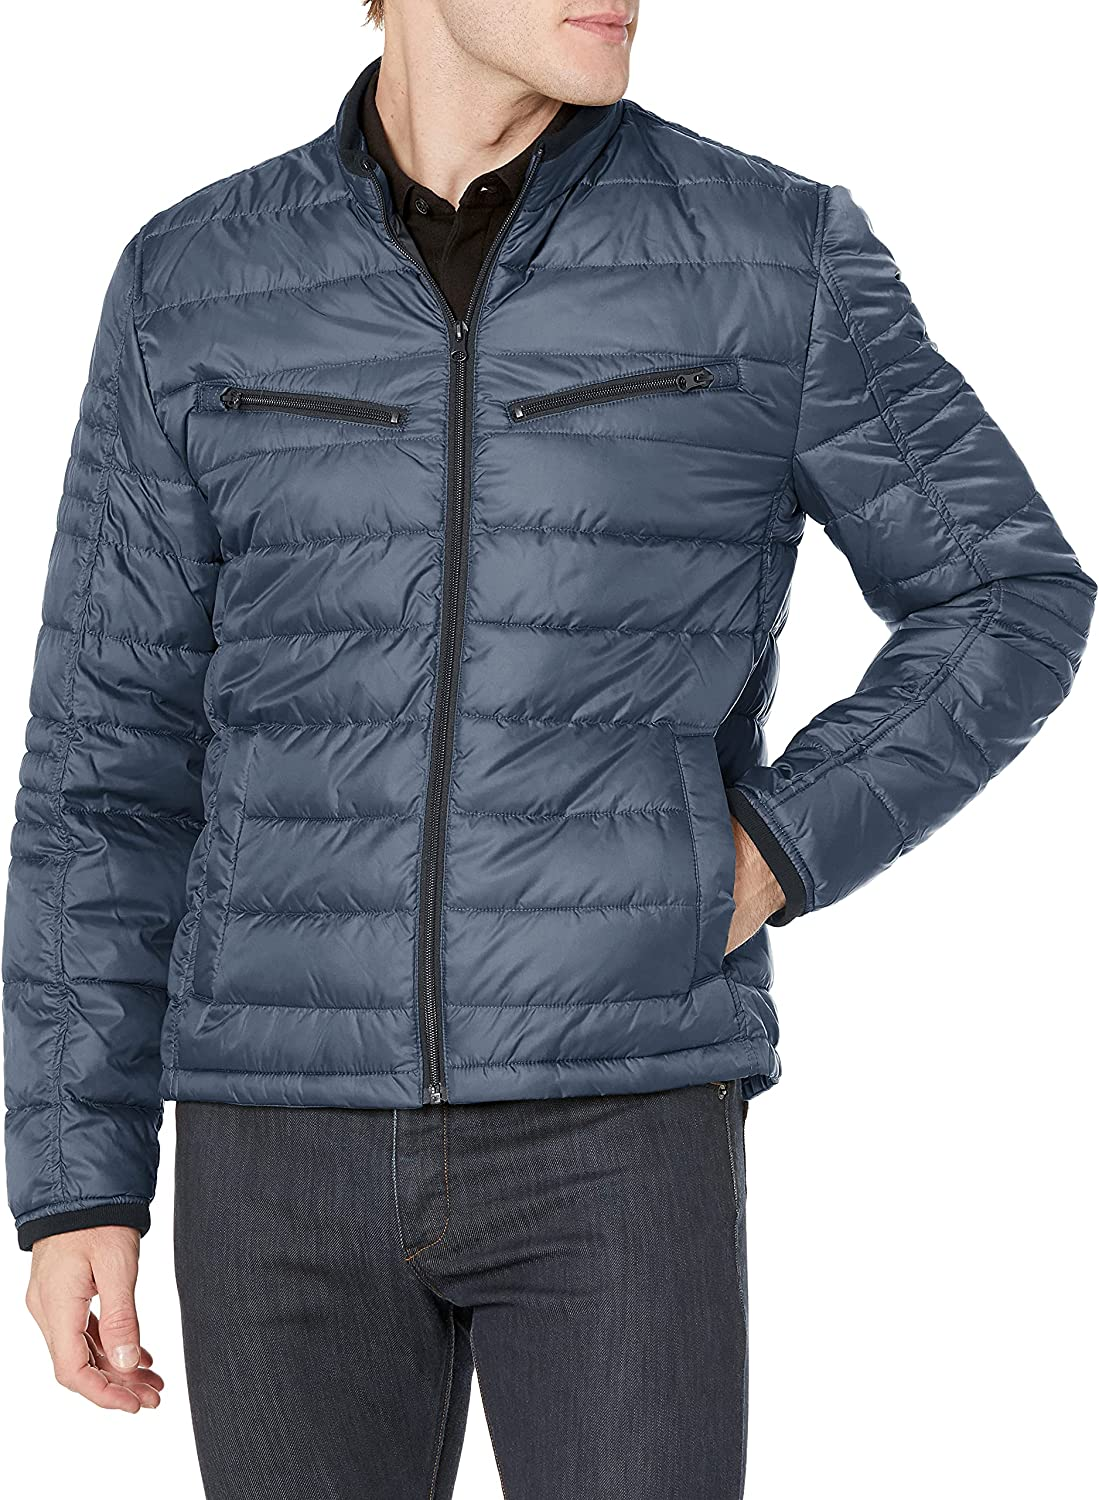 Marc New Cheap mail order specialty store York by Andrew Men's San Diego Mall Diamond Four P Quilted Grymes